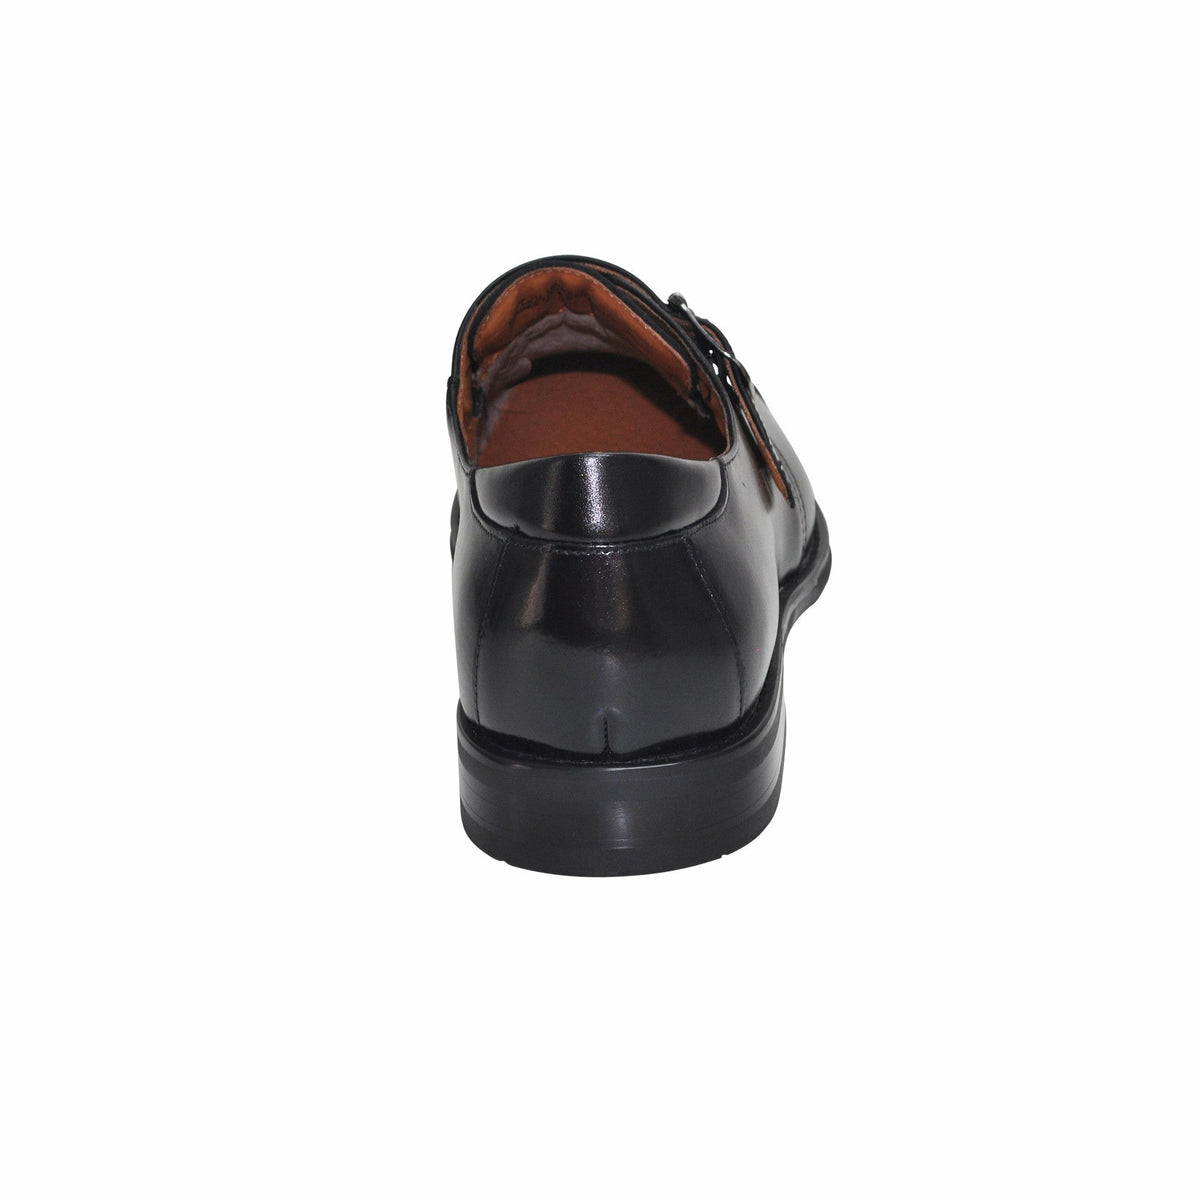 Florsheim 'Marlon' Buckle Shoe in Black